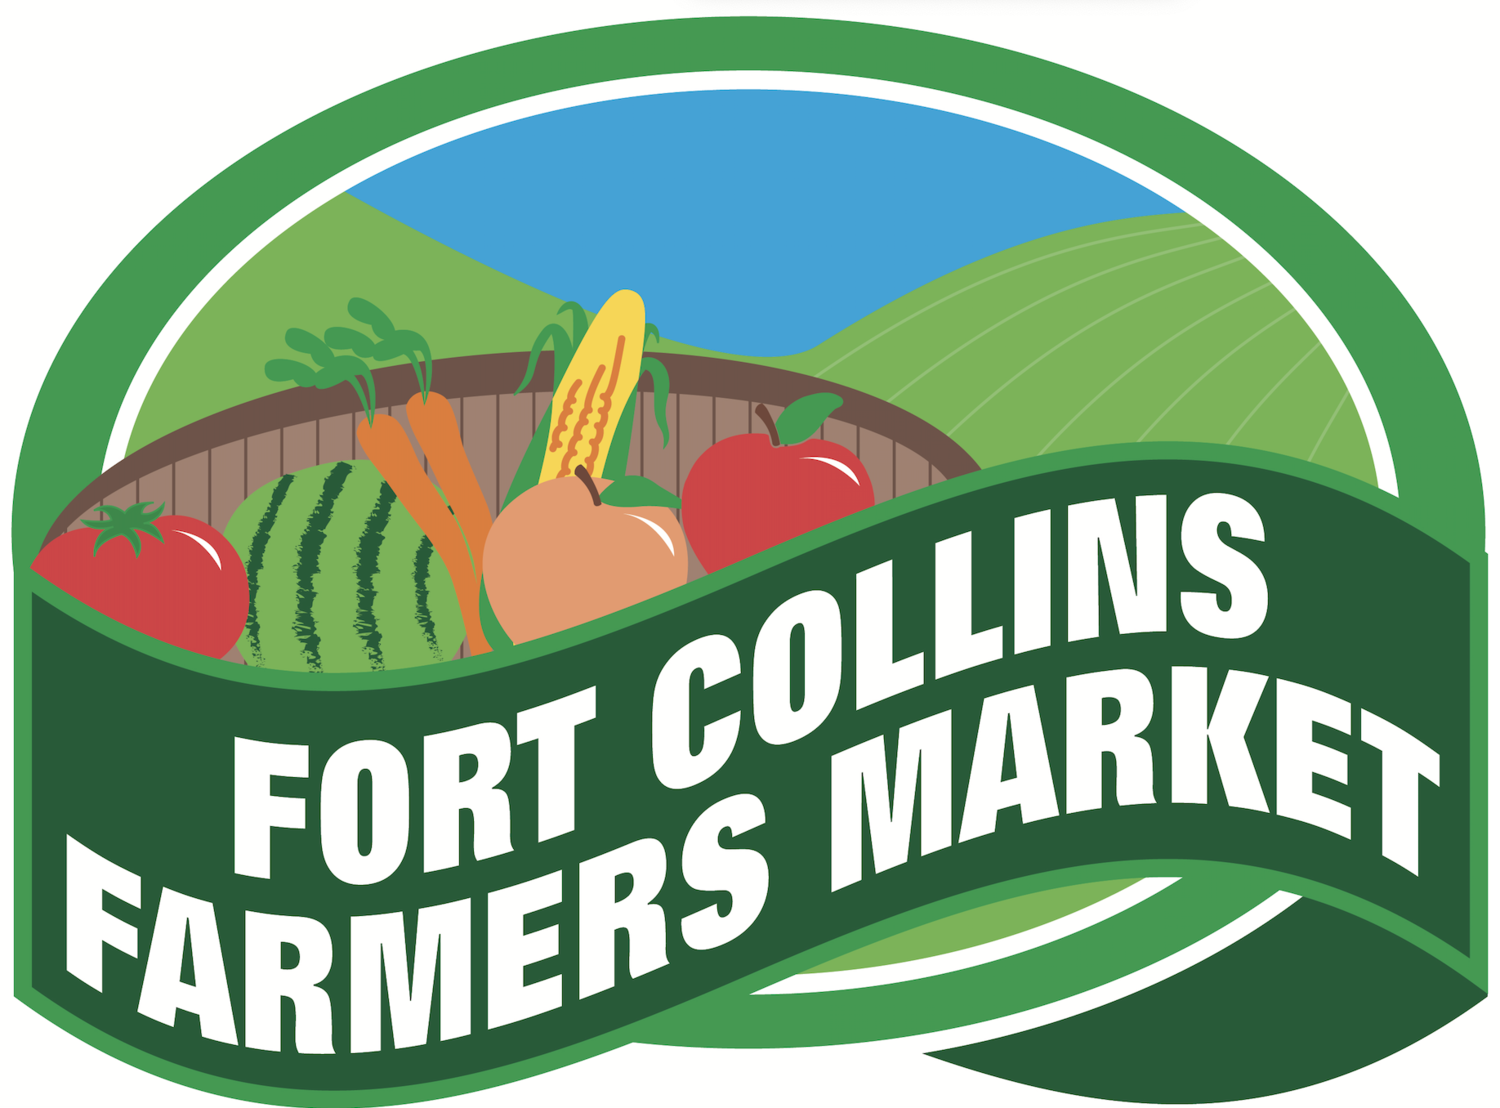 Fort Collins Farmers Market